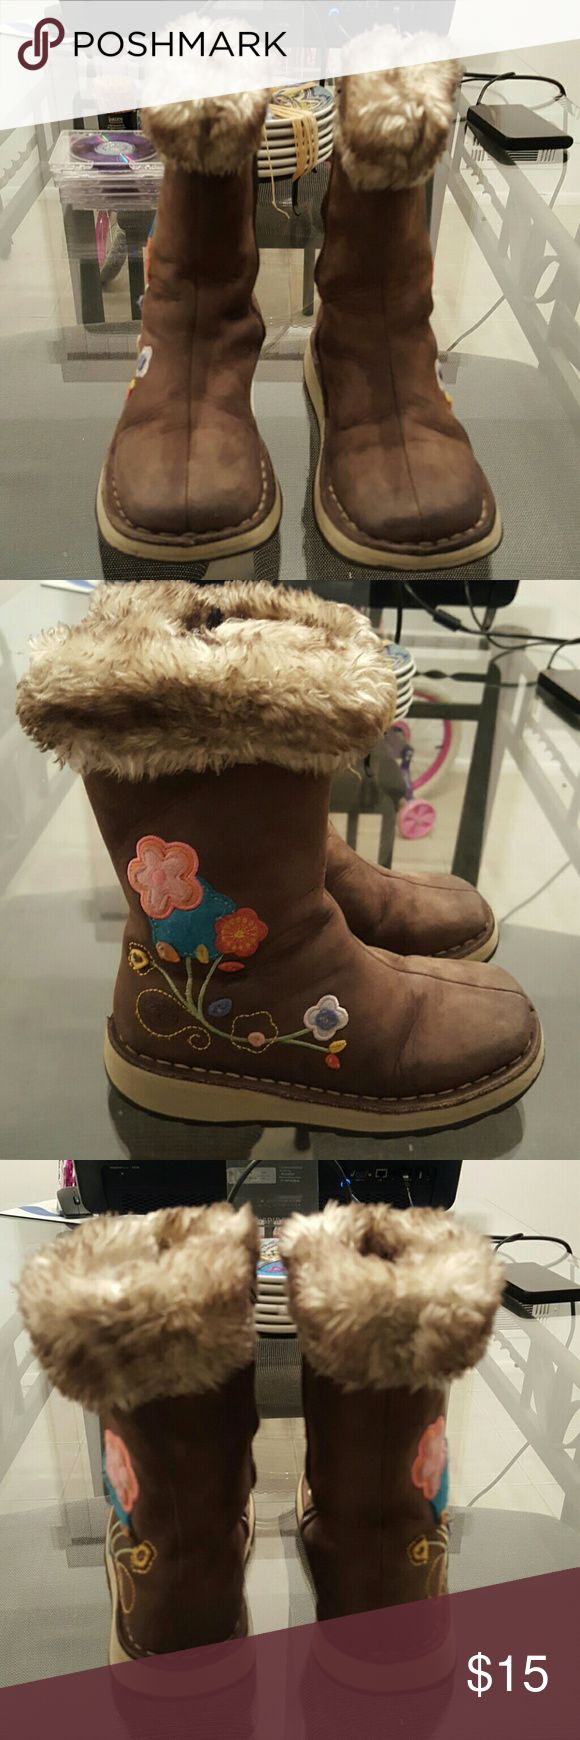 GIRLS TIMBERLAND BOOTS...SIZE 10.5M COLOR: BROWN EMBROIDERY ON SIDE OF BOOTS ZIPPER ENTRY FAUX FUR LINING INSIDE OF BOOTS PRICE FIRM! Timberland Shoes Boots